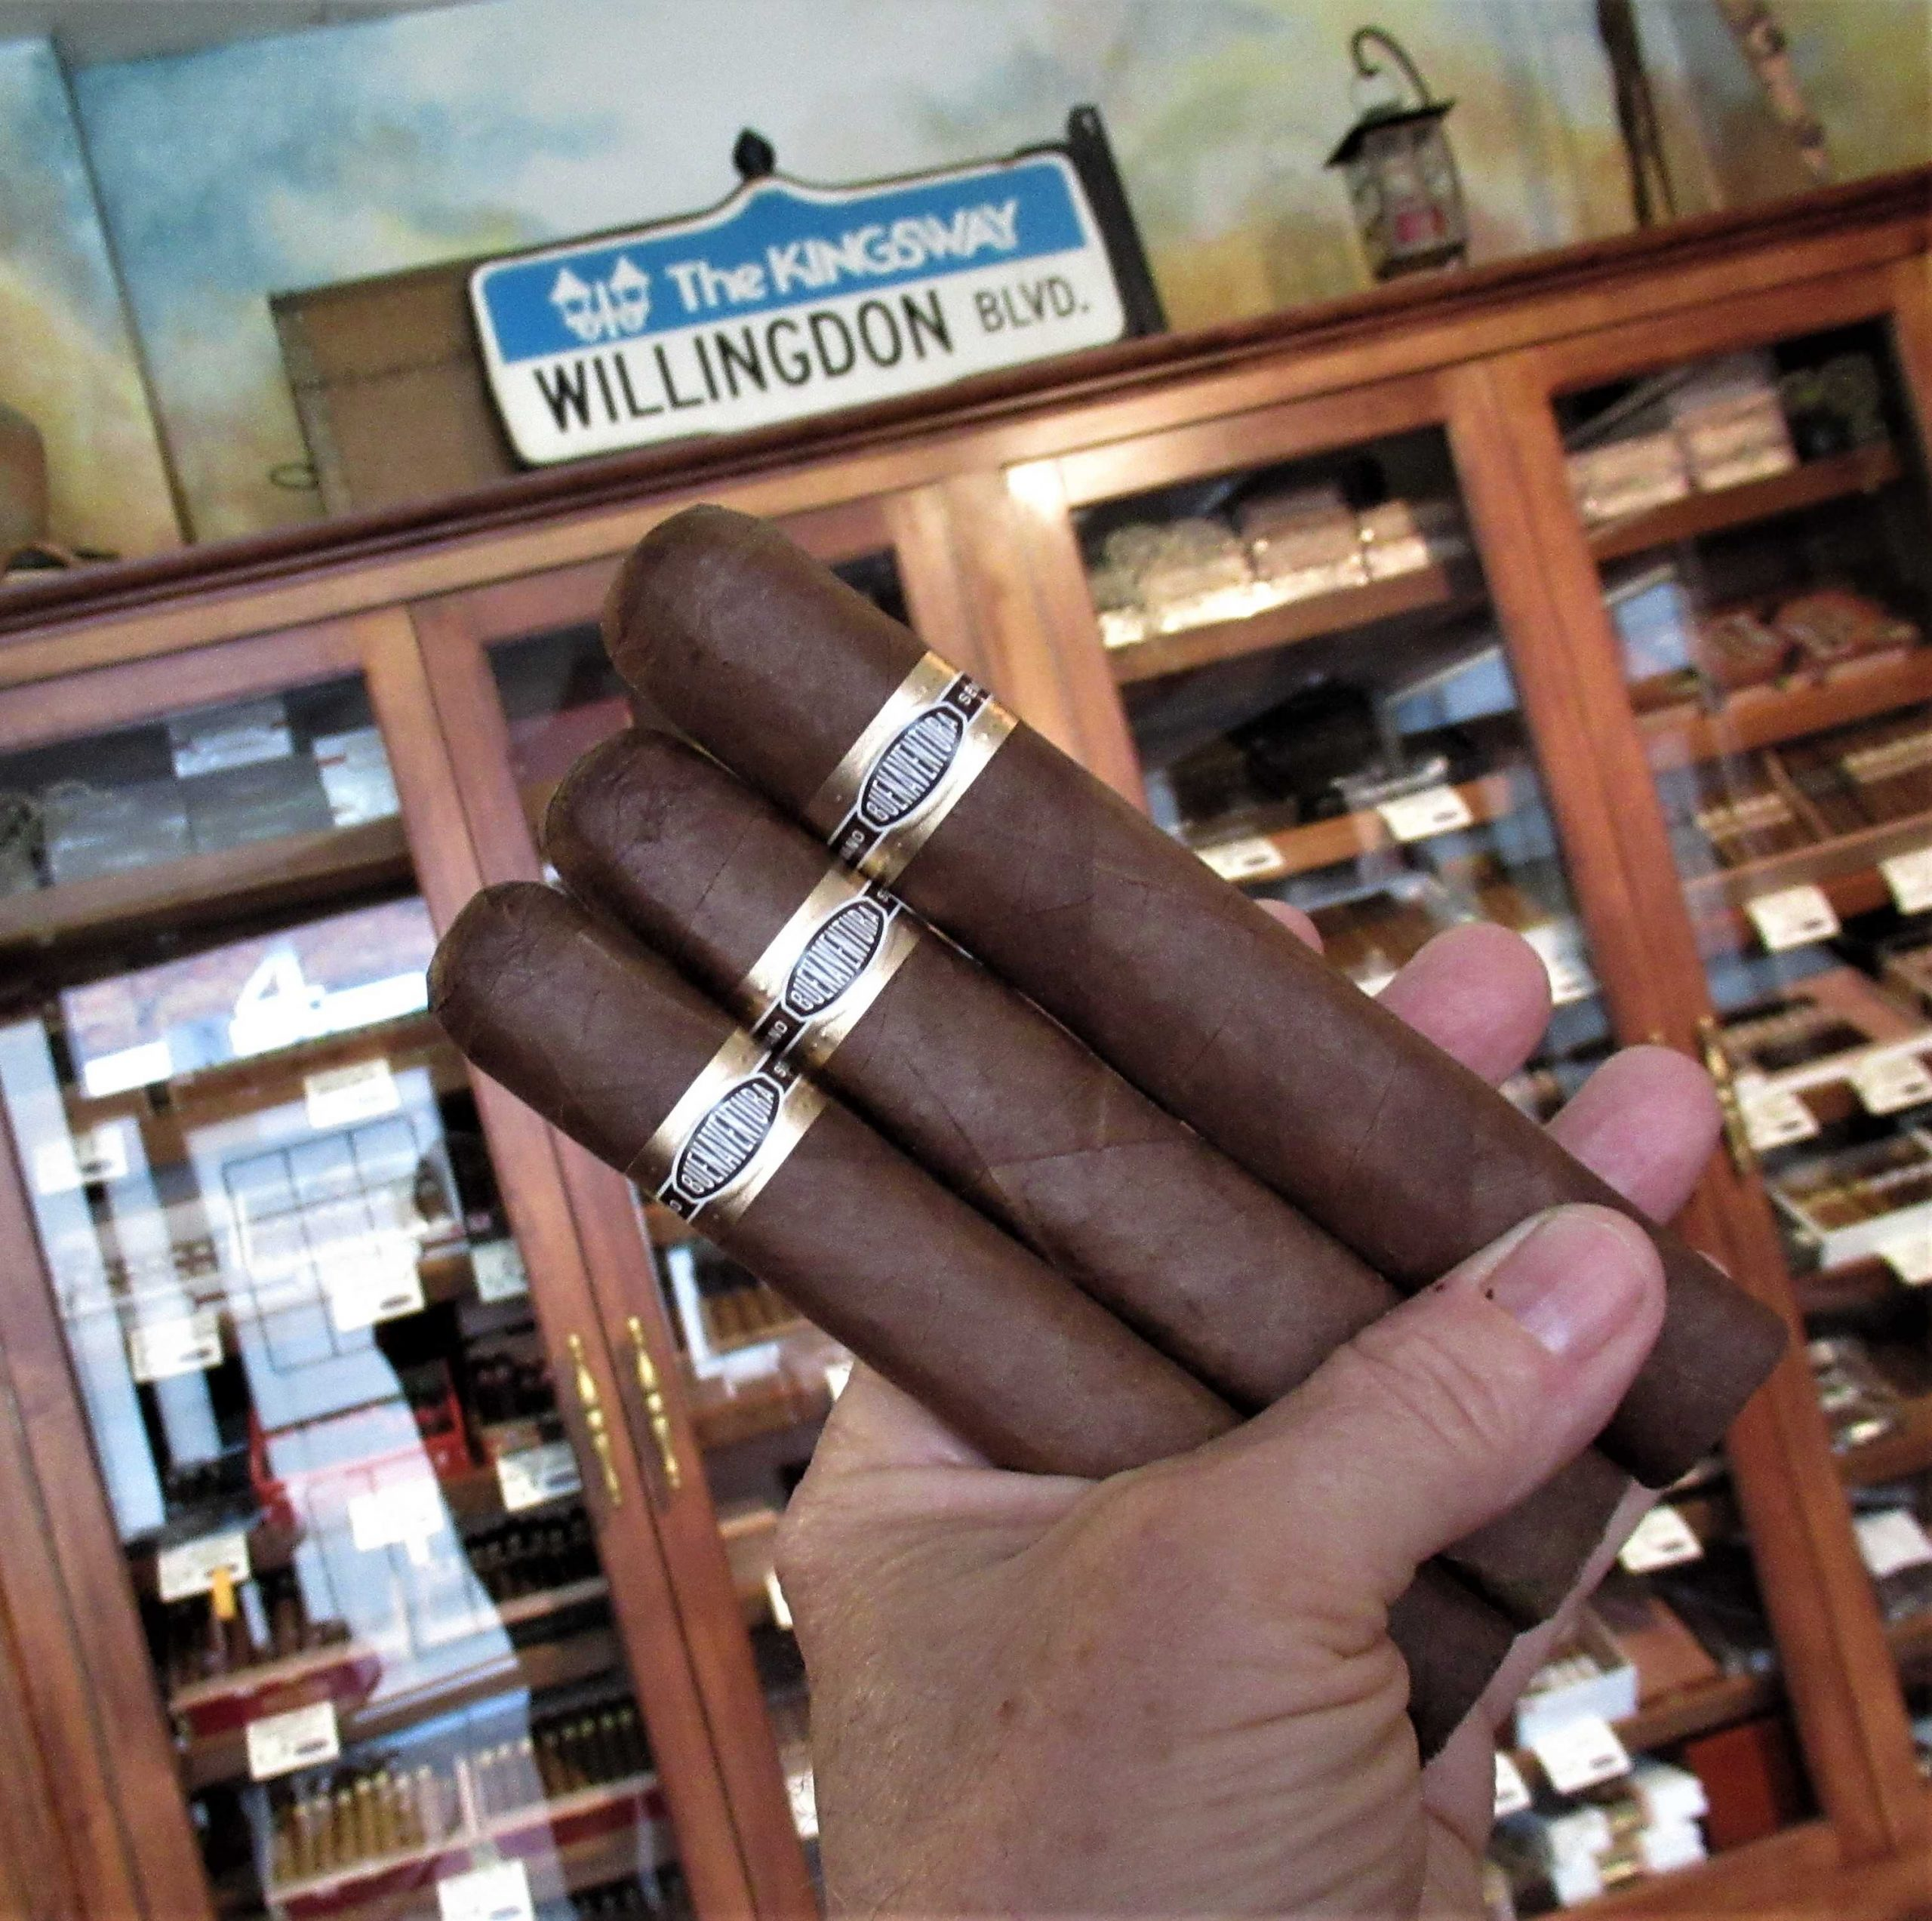 Old School Cuban Flavor Cigars 3 Pack with a Robusto, Toro and Gordo